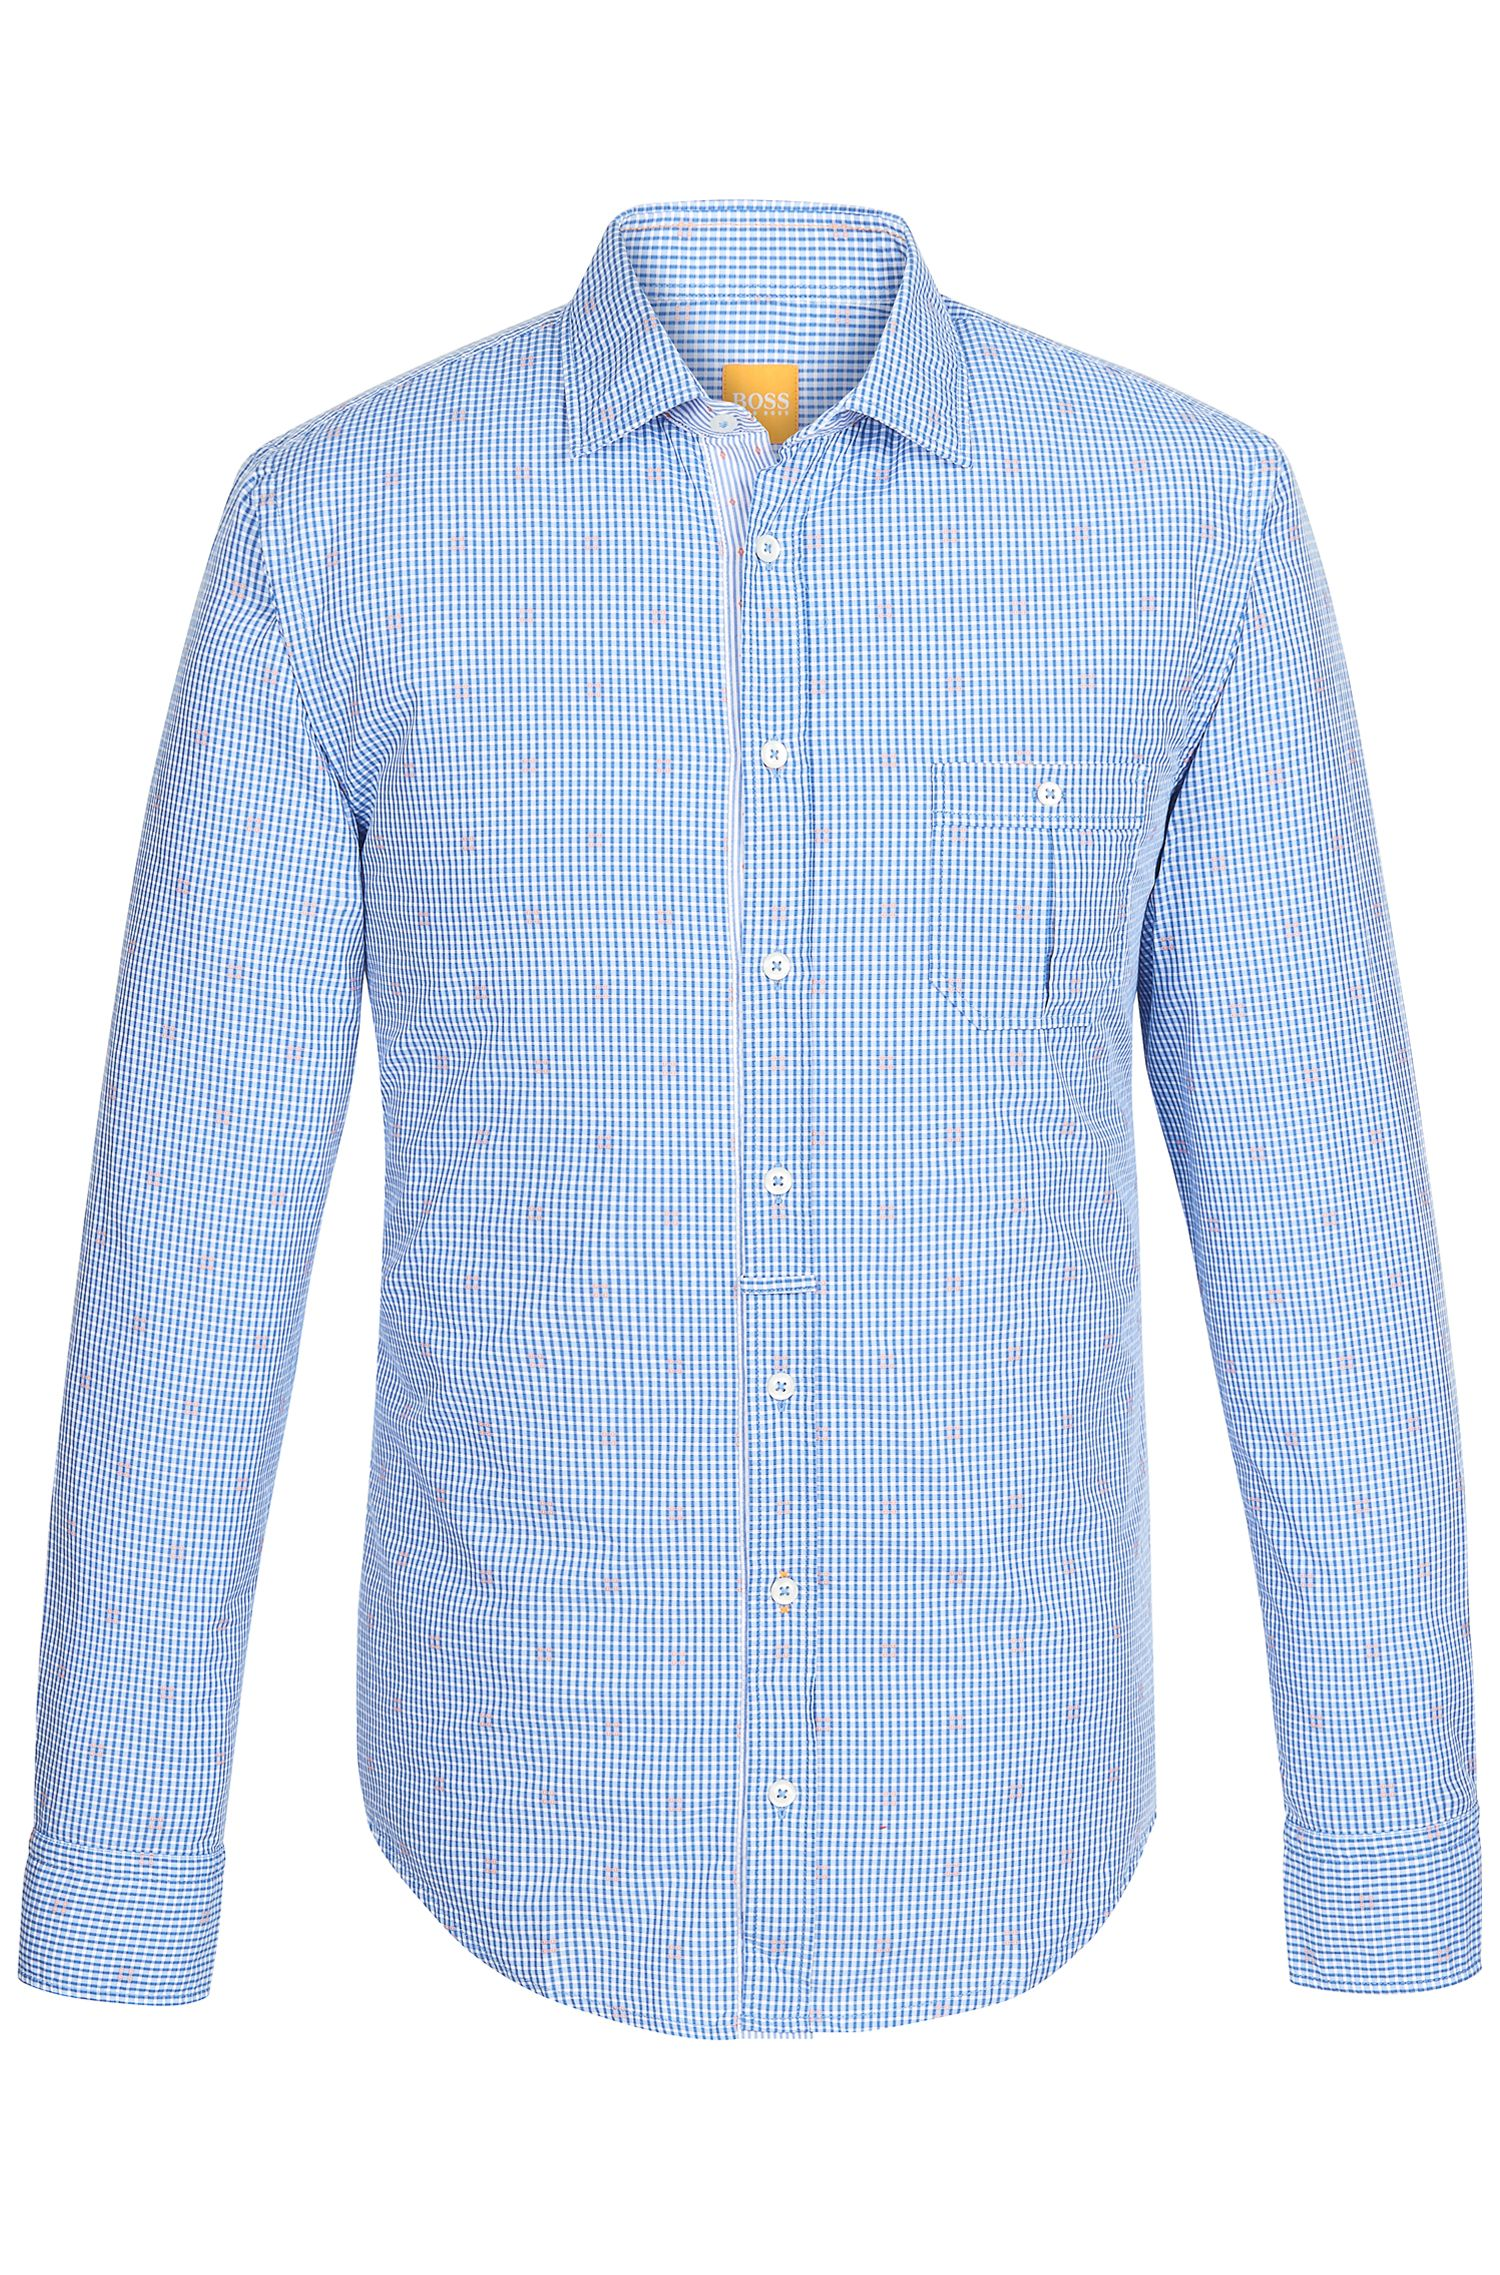 'EslimE' | Extra Slim Fit, Cotton Embroidered Button Down Shirt